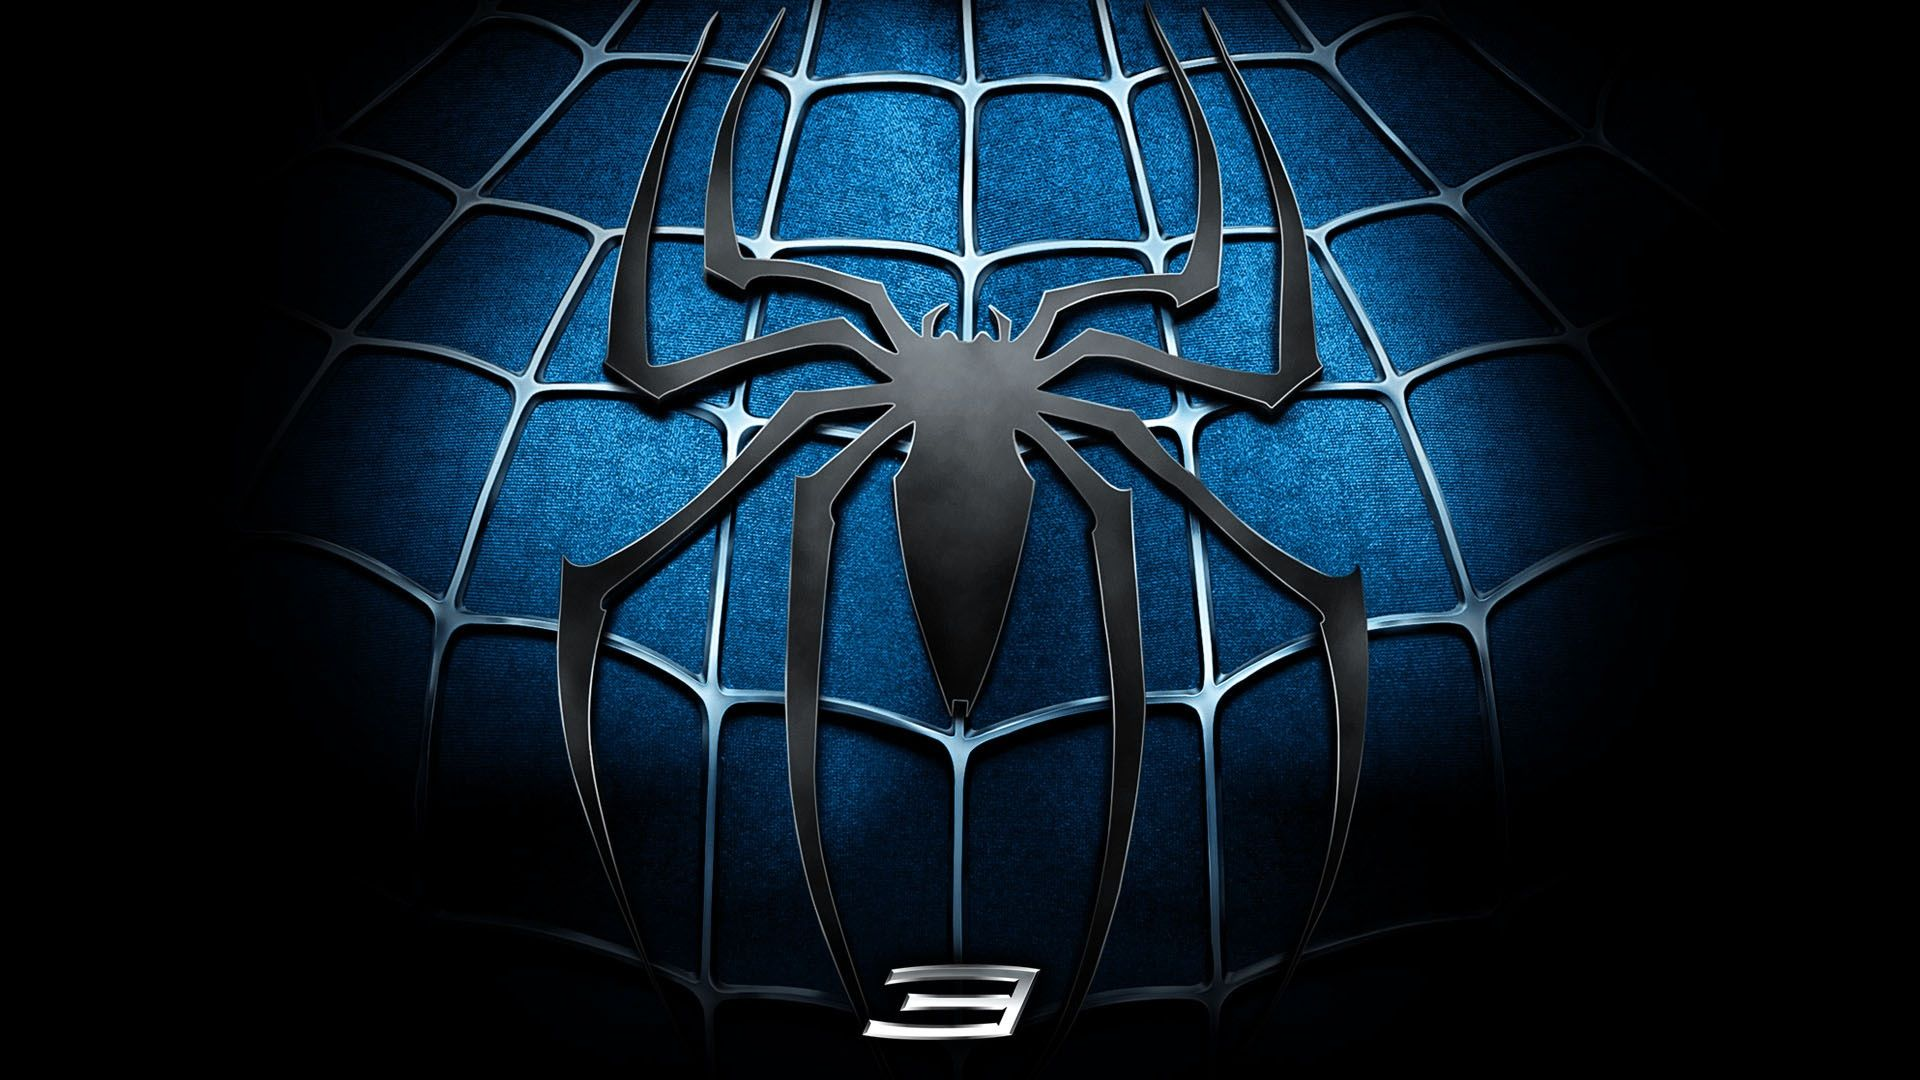 spider man 3 wallpapers pinterest spiderman wallpaper and spider